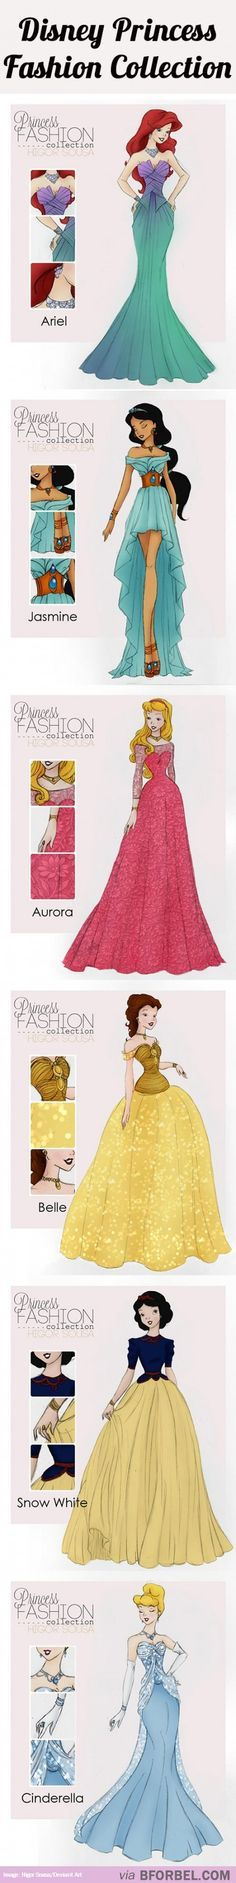 6 Disney Princess Fashion Collections…Jasmines dress is really cute!